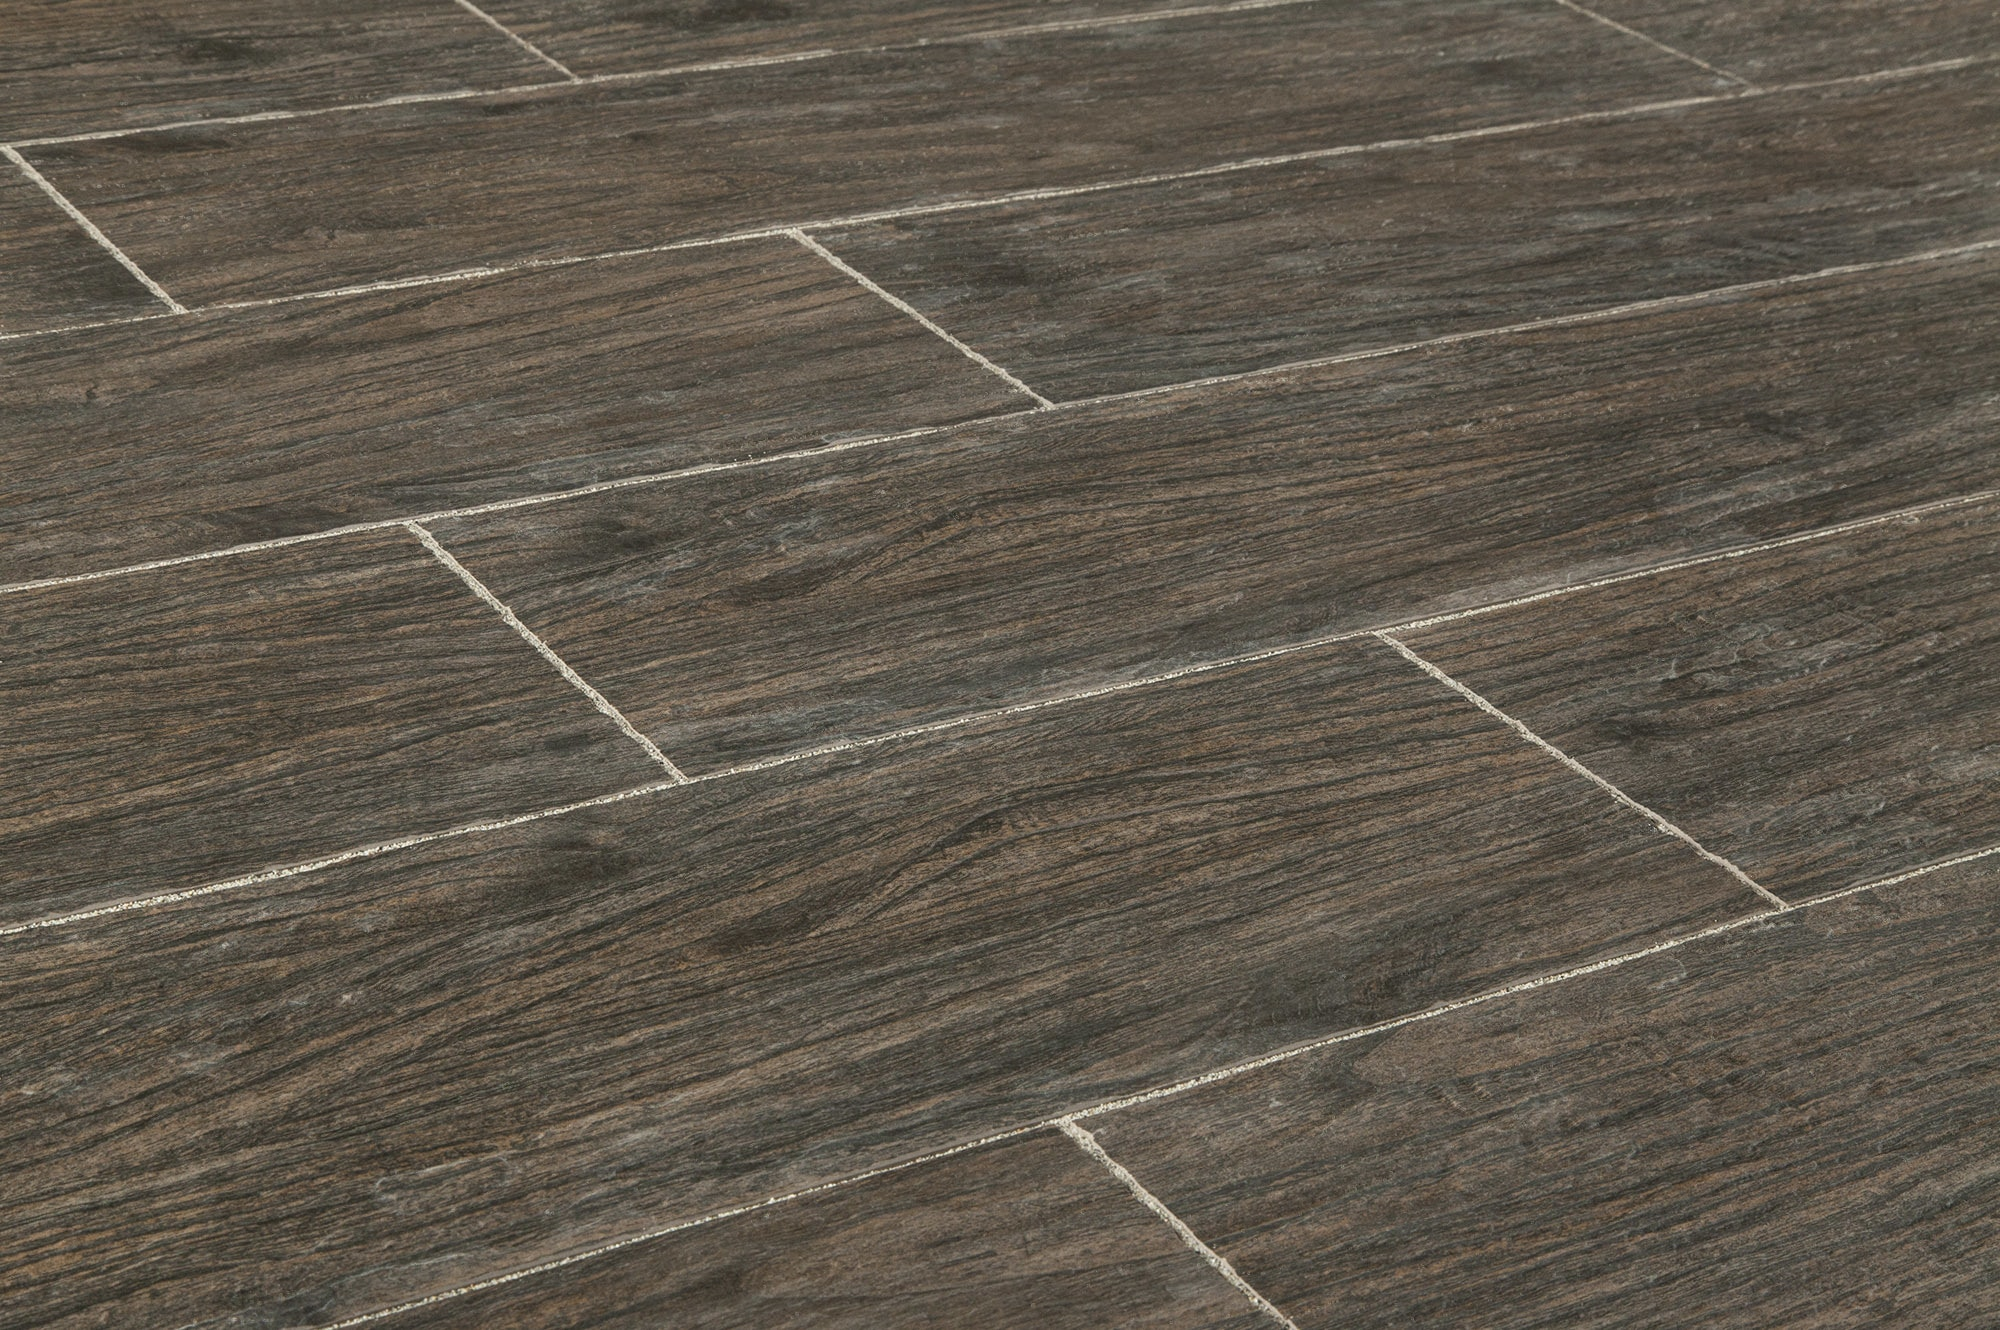 Salerno porcelain tile sherwood series espresso embossed 6x24 dailygadgetfo Image collections